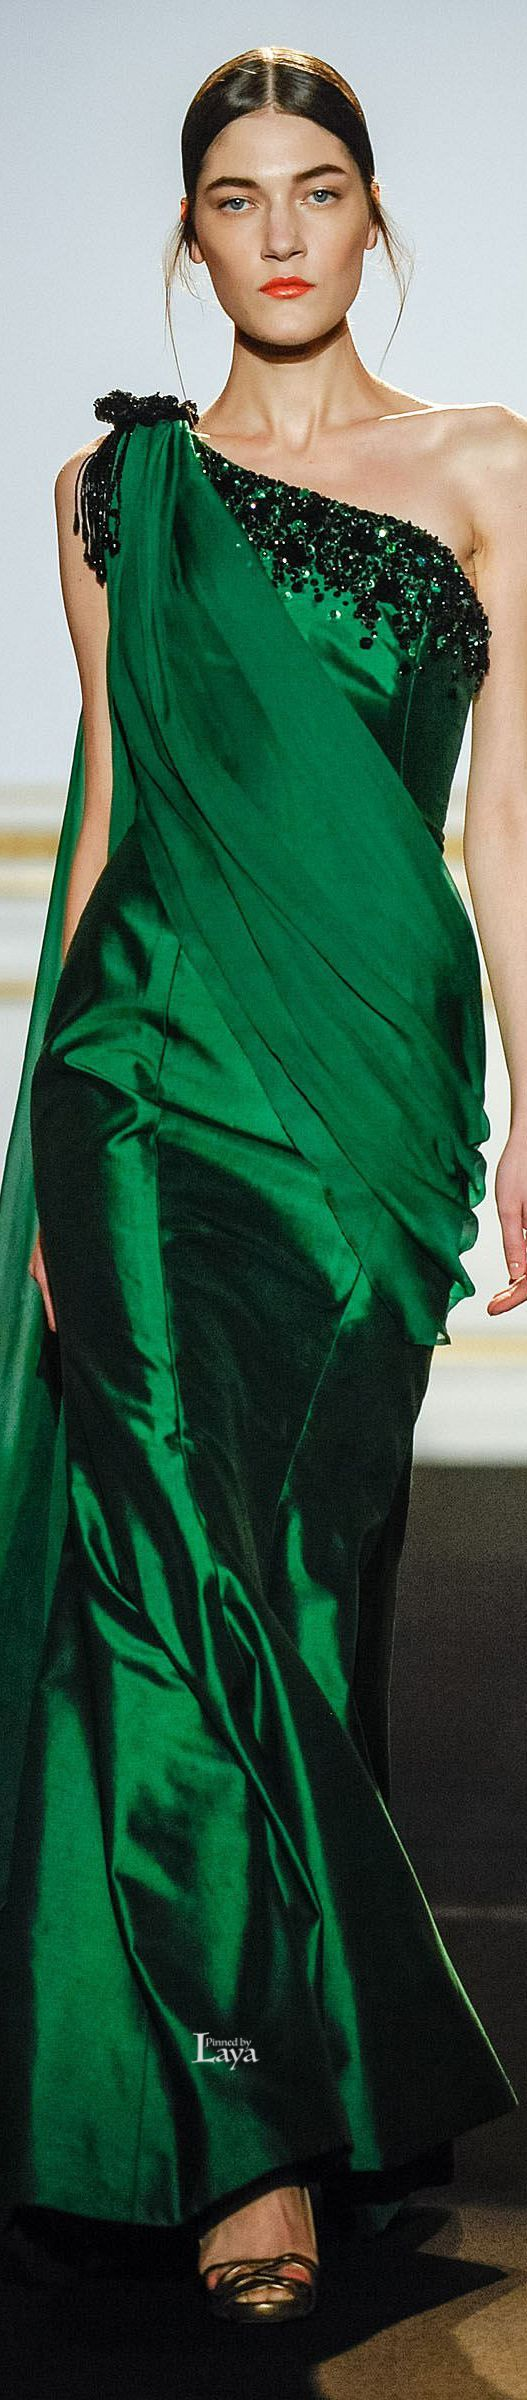 Dany Atrache ~ Couture Emerald Green Gown, Summer 2015